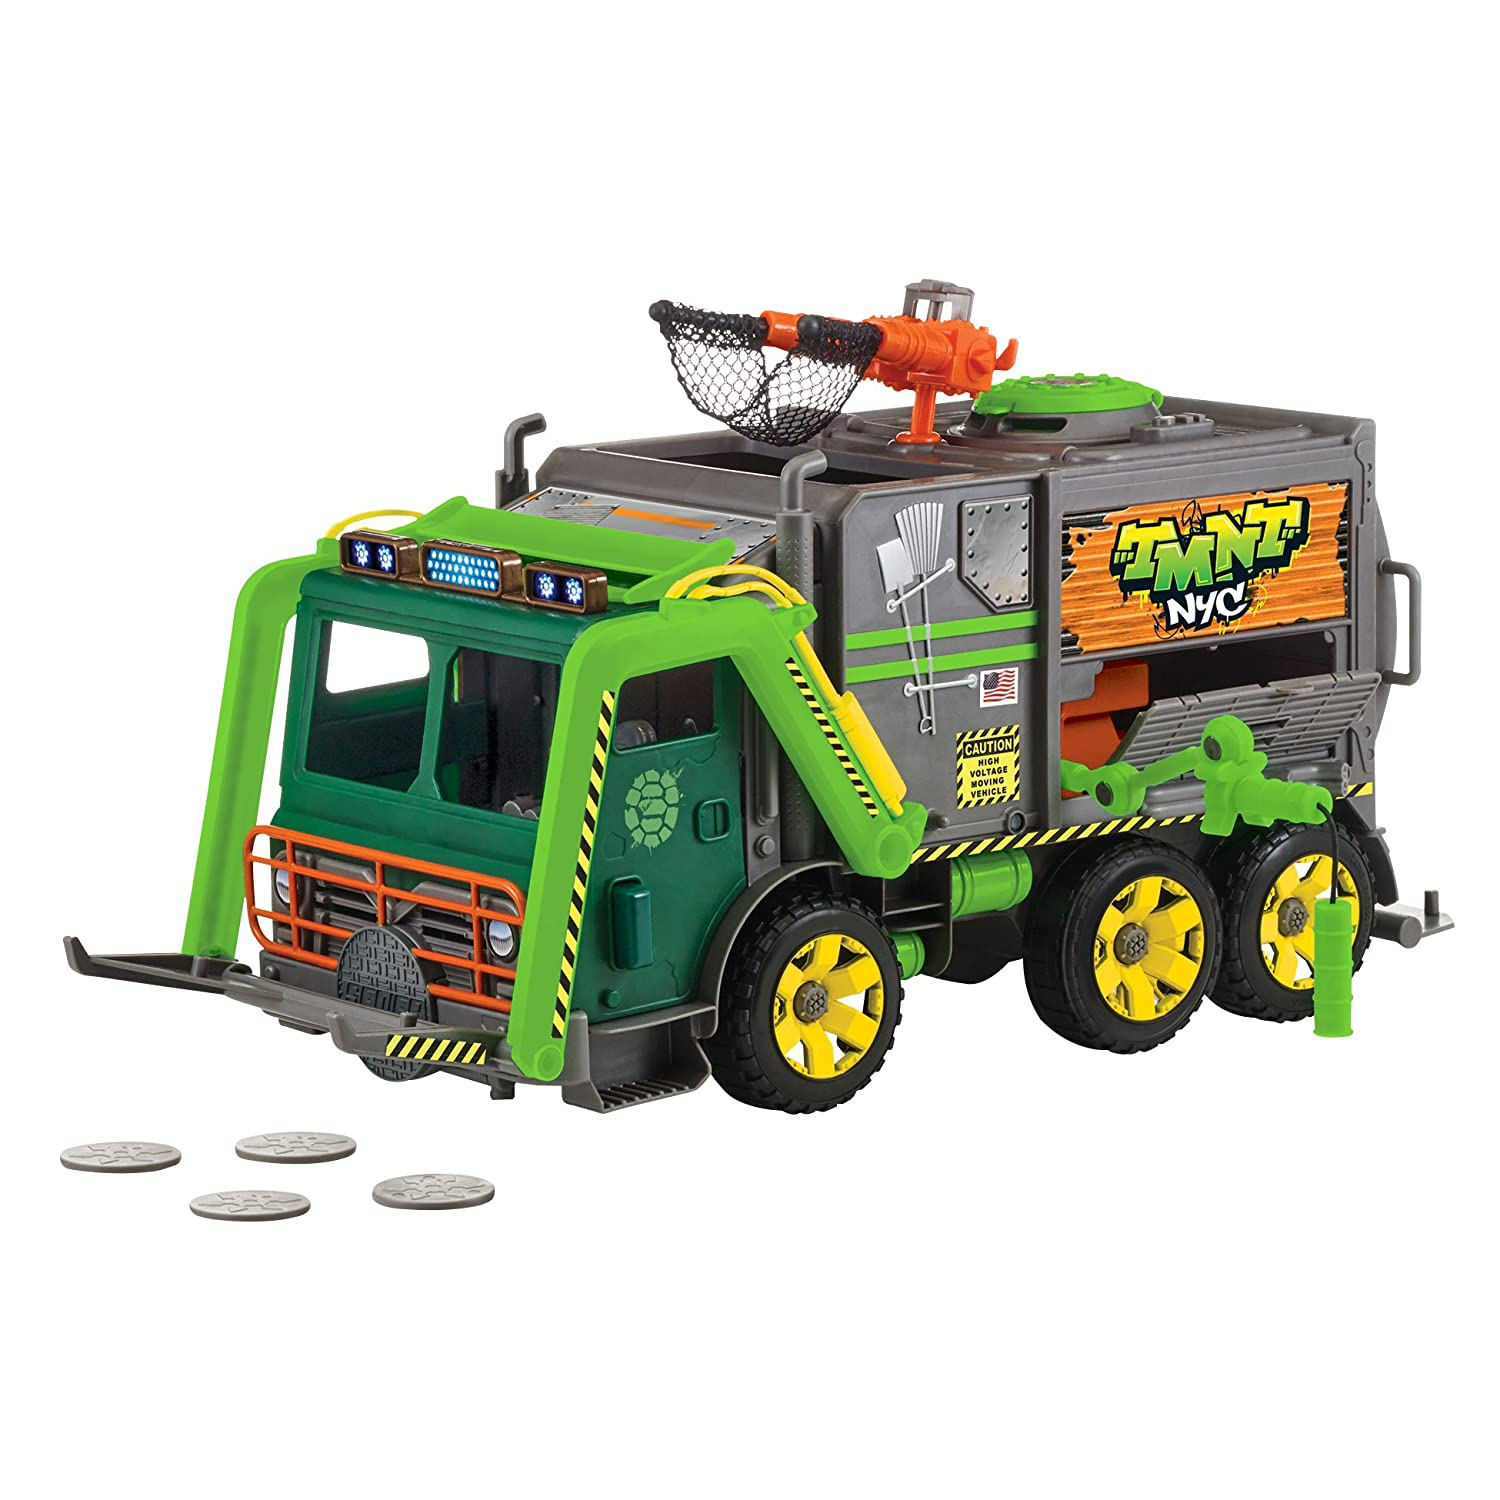 Teenage Mutant Ninja Turtles Tactical Truck Vehicle